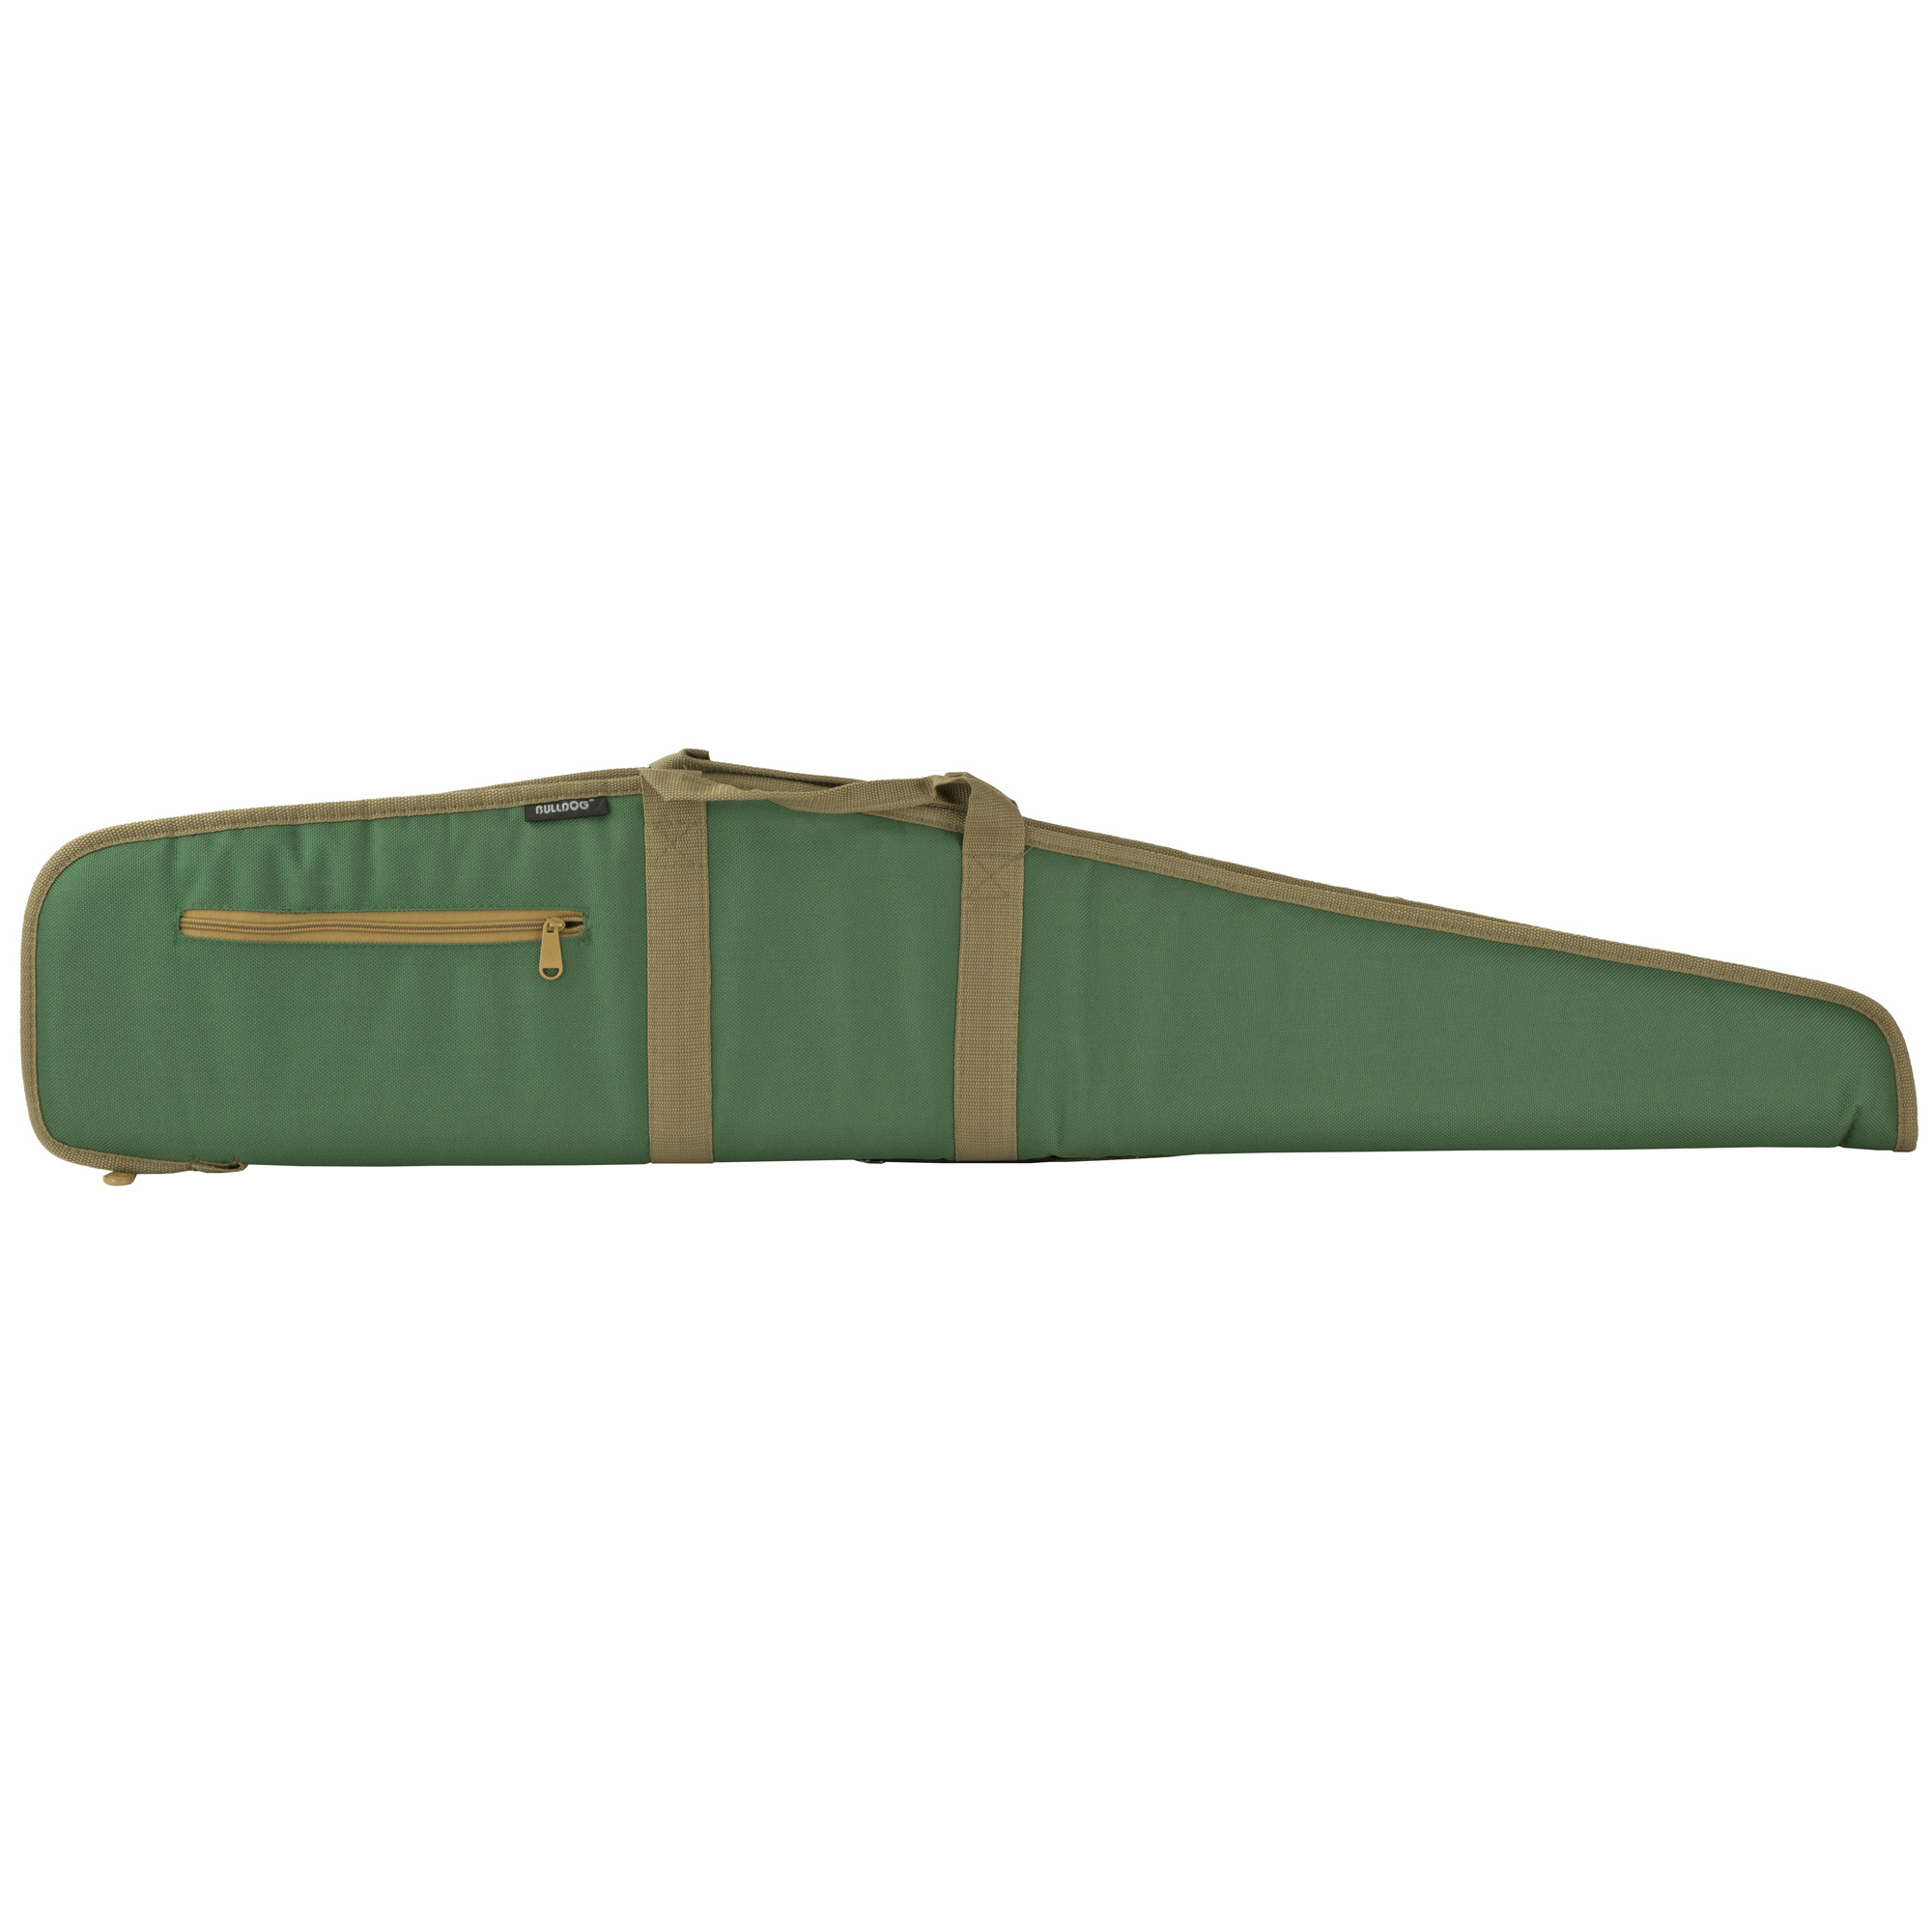 Bulldog Extreme Rifle Case Grn 48